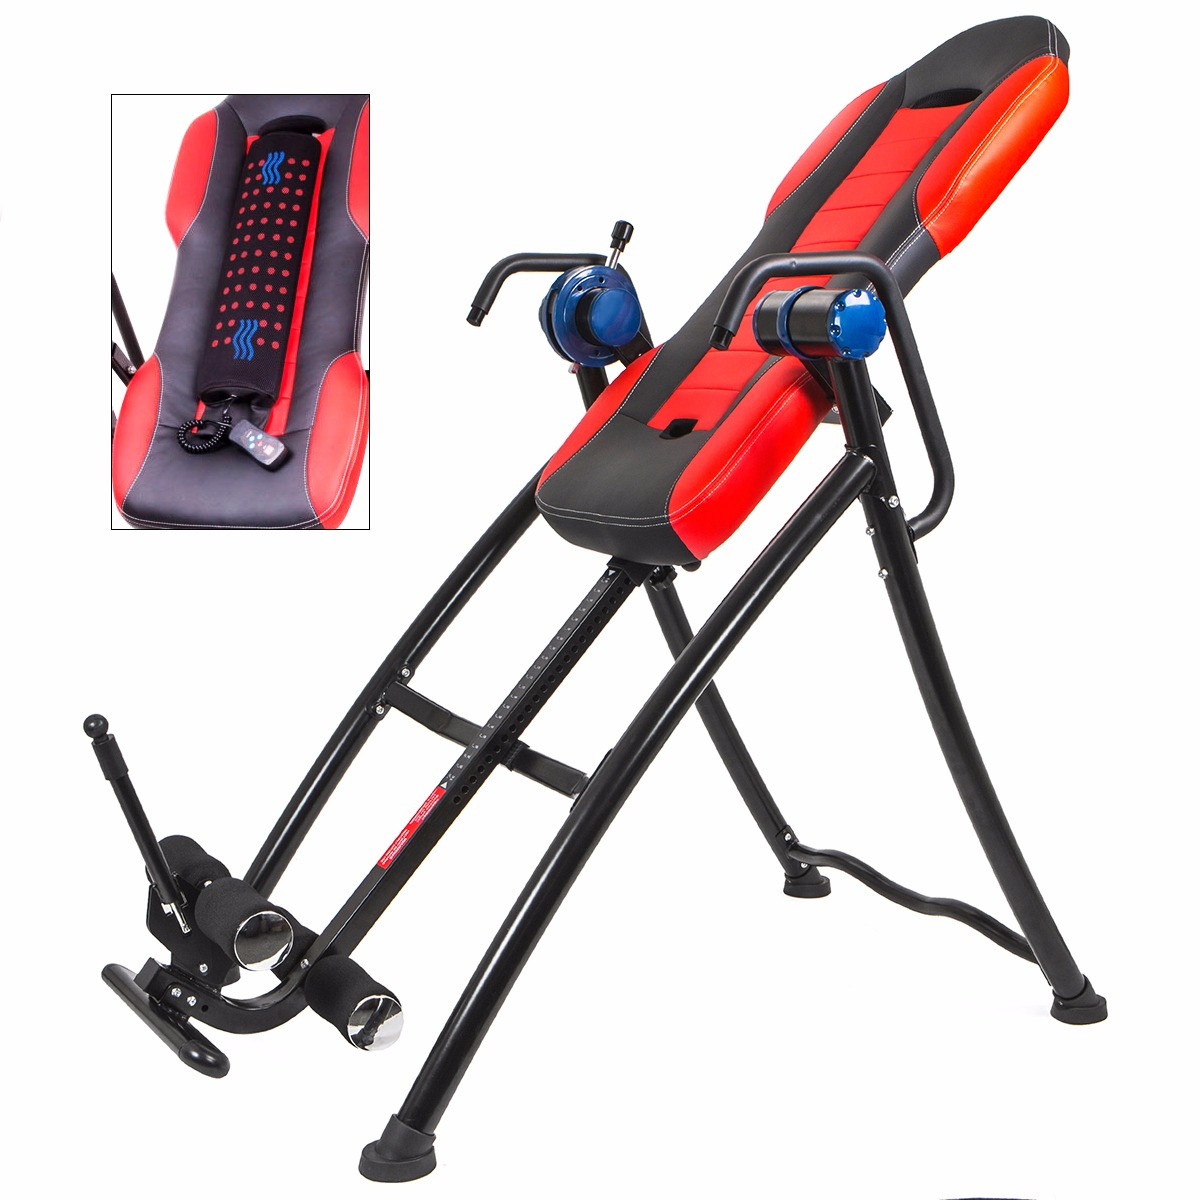 XtremepowerUS Chiropractic Gravity Inversion Therapy Table Fitness, with Cushion